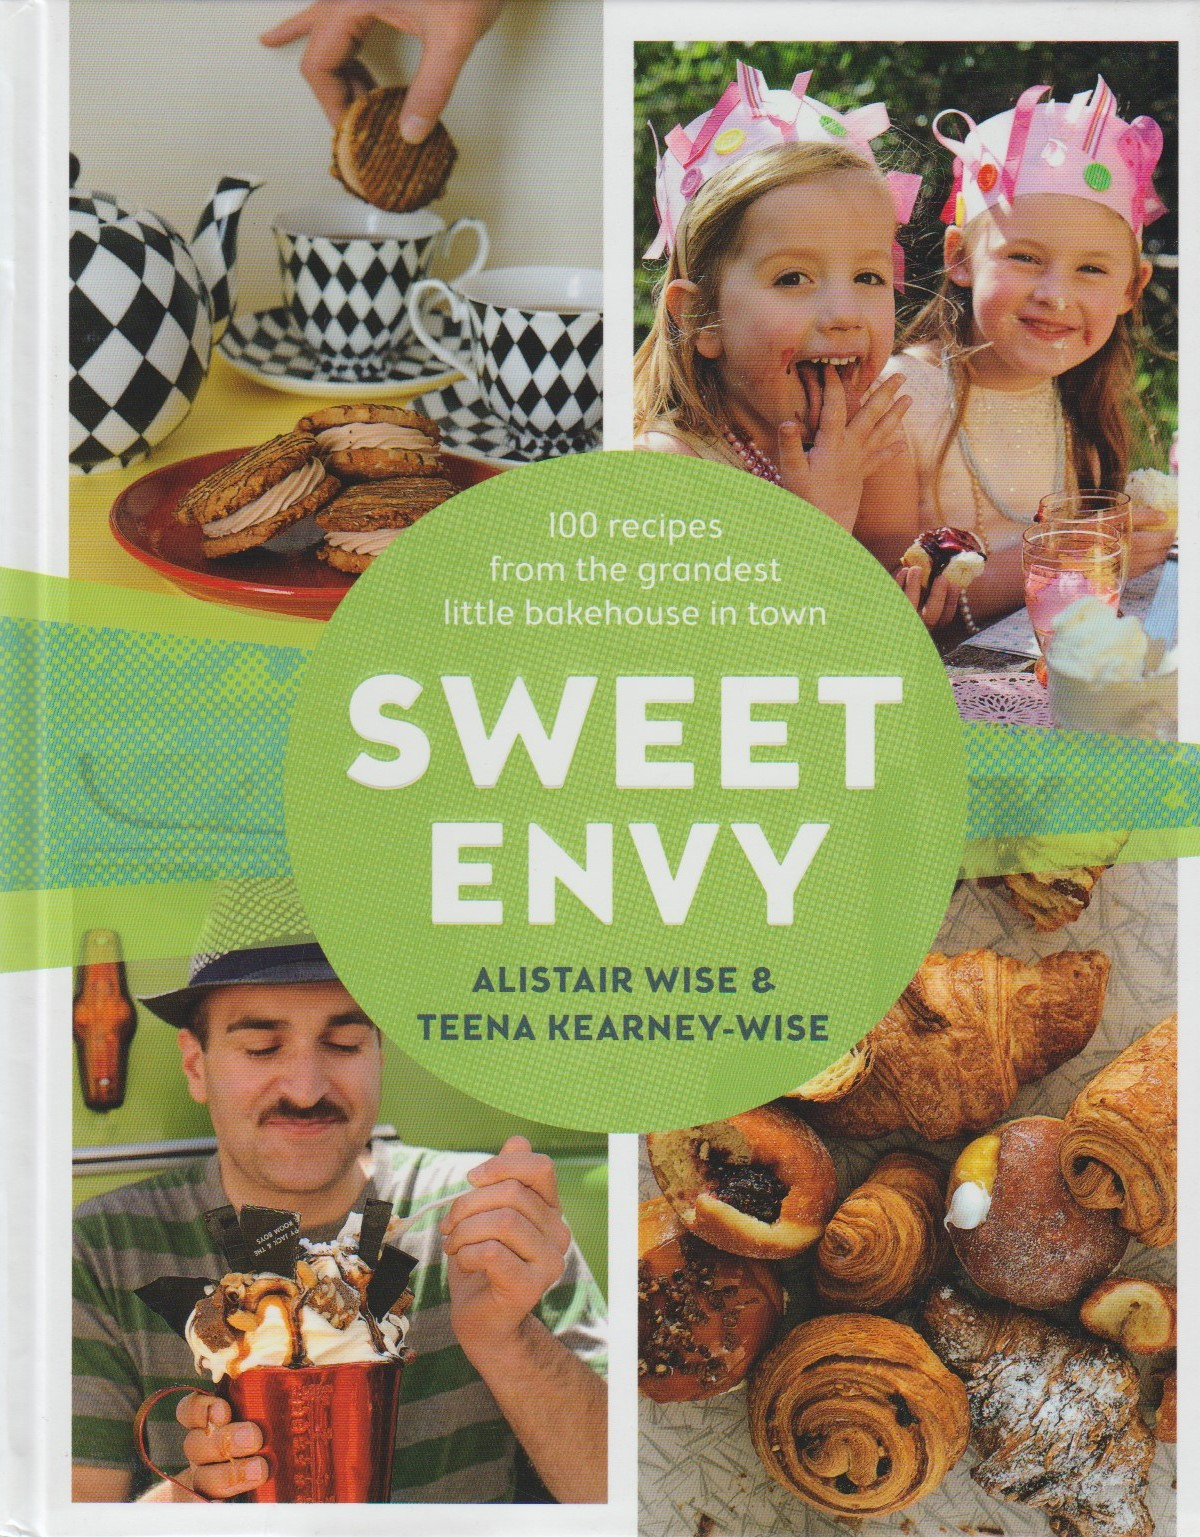 Sweet Envy - 100 recipes from the grandest little bakehouse in town